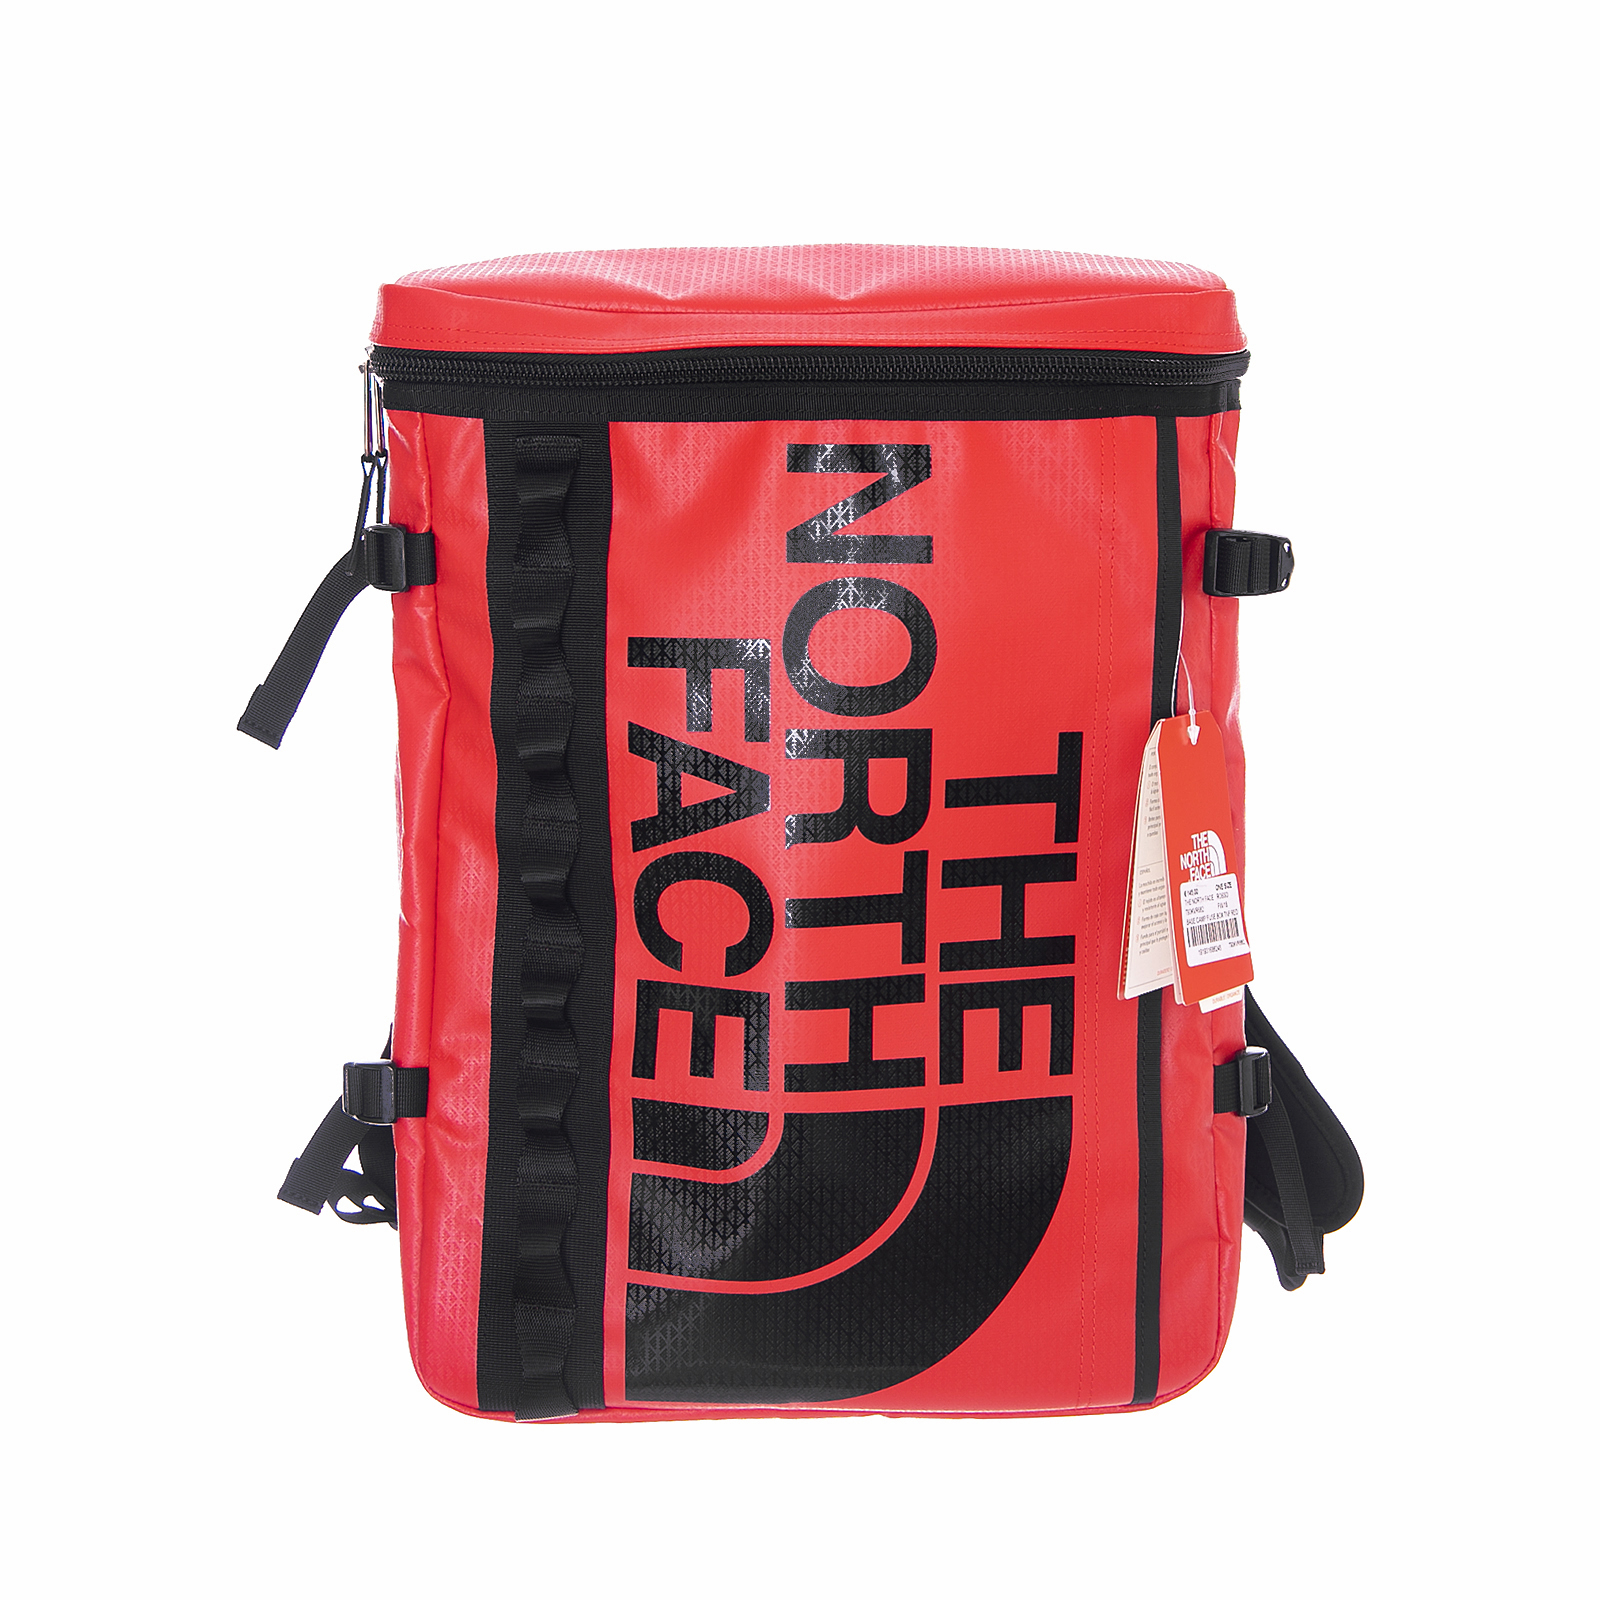 Tnf Face Box Rosso Red North 145 Eur Fuse Base Zaini Camp 00 The H01q5Yx